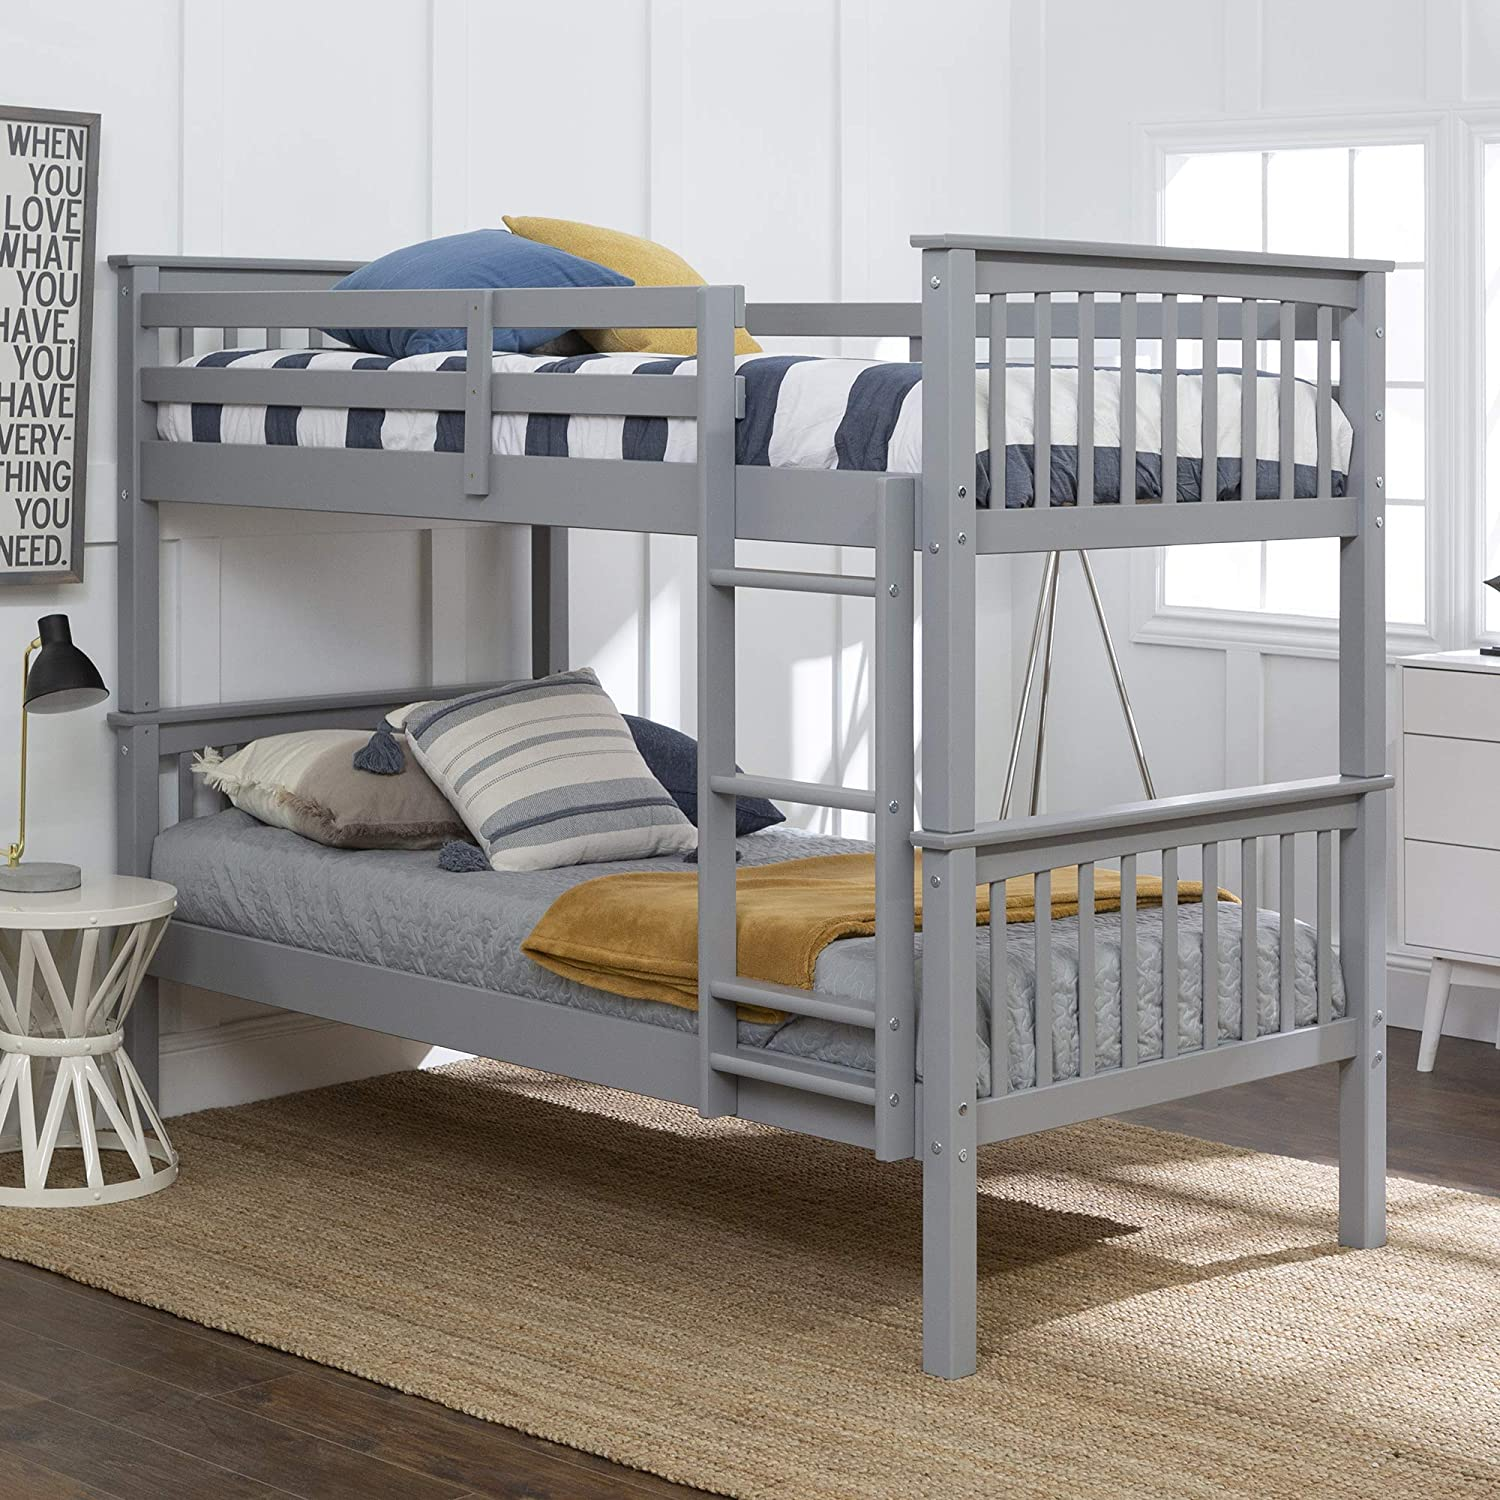 Amazon Com Walker Edison Wood Twin Over Twin Bunk Bed Kids Bed Bedroom With Guard Rail And Ladder Easy Assembly Twin Grey Model Azwtotmsgy Furniture Decor